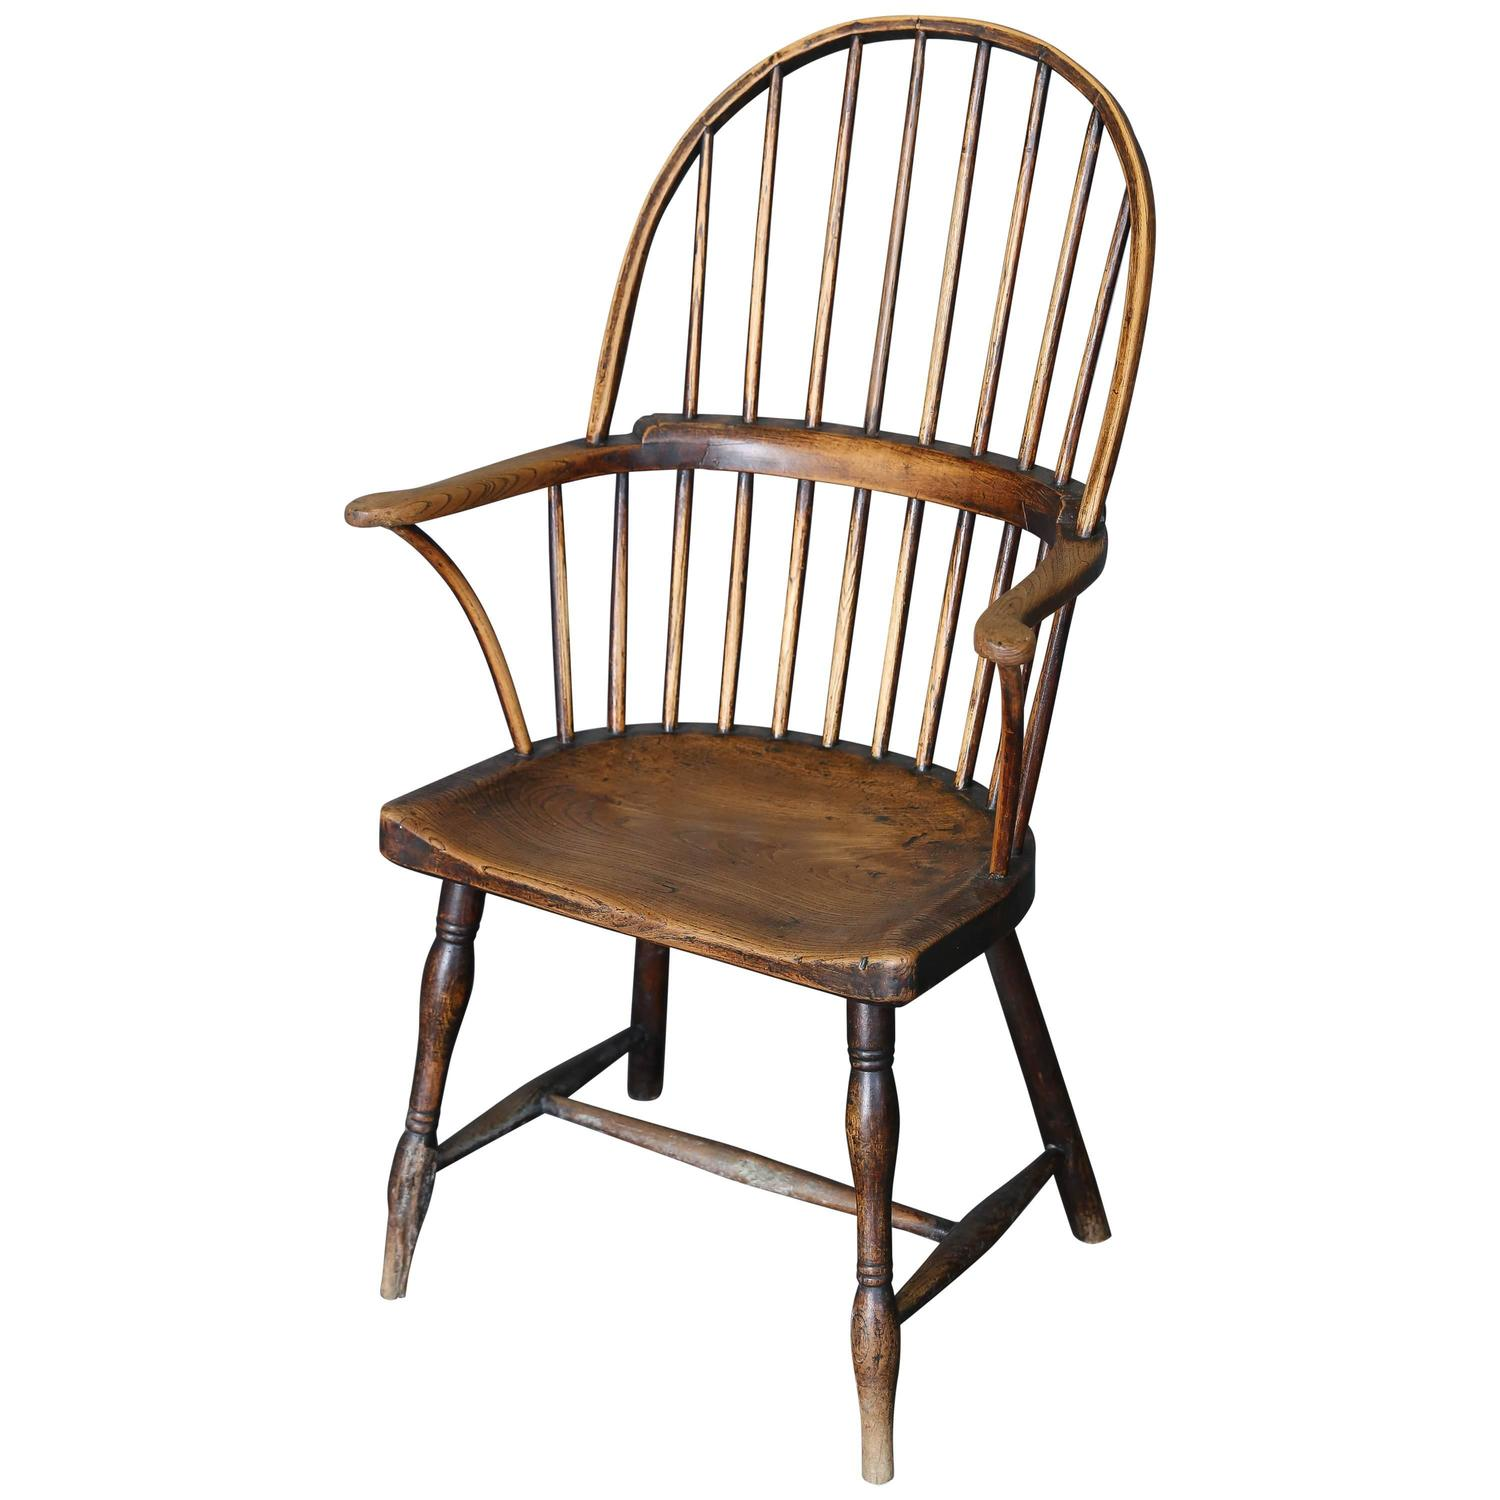 Attrayant Antique 18th Century Ash And Elm Windsor Chair For Sale At 1stdibs